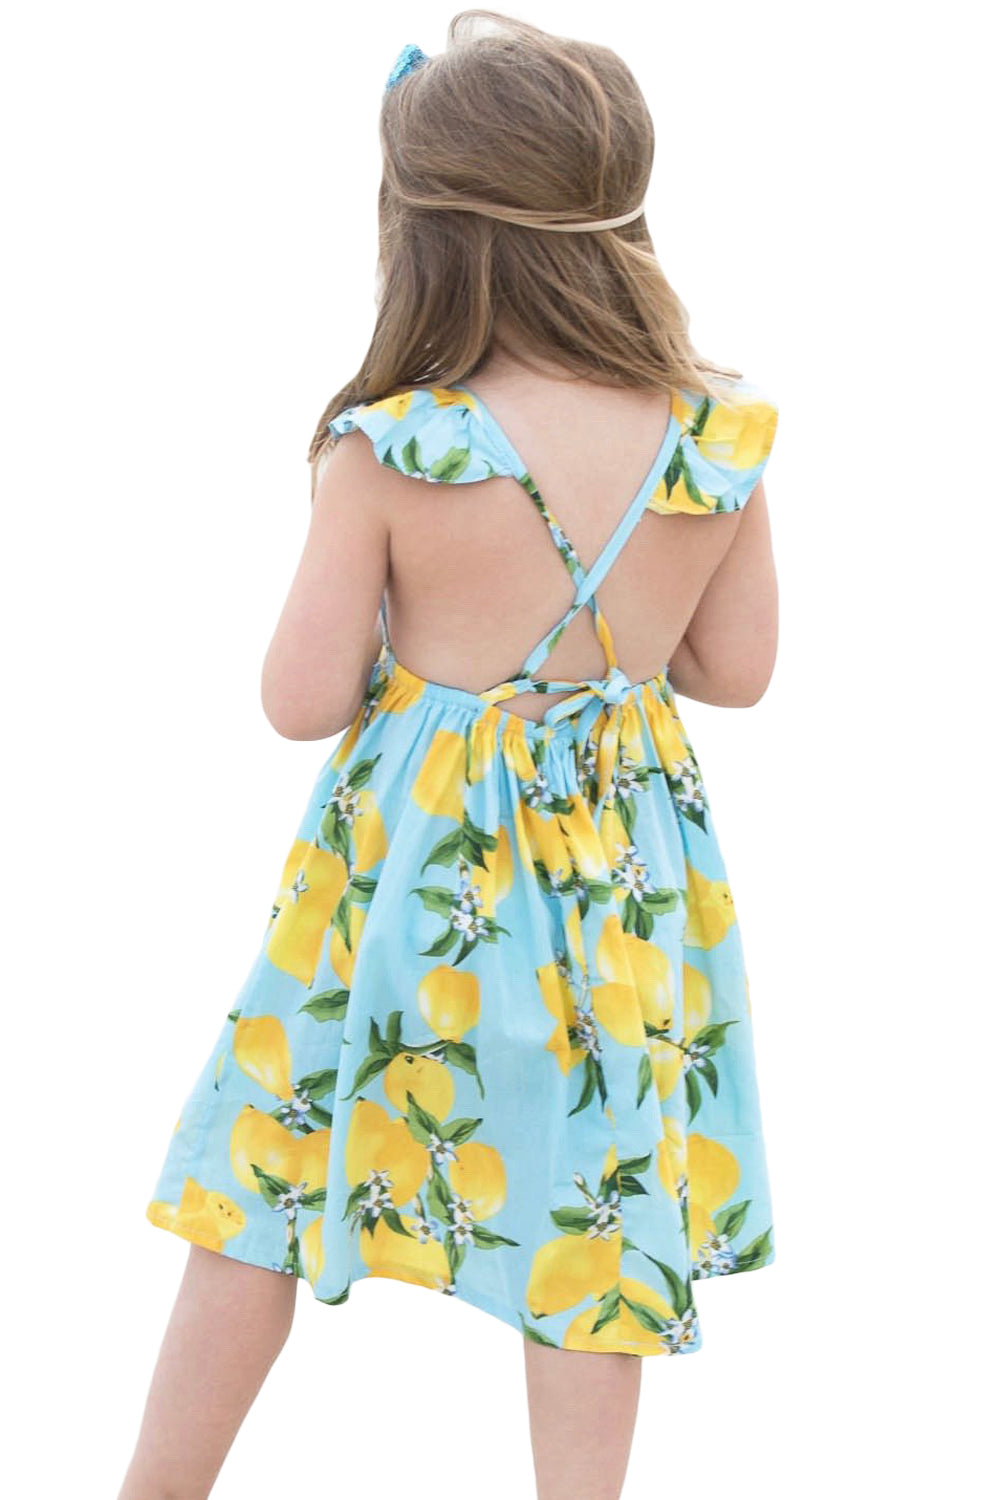 Aqua Blue Lemon Print Girls' Sundress